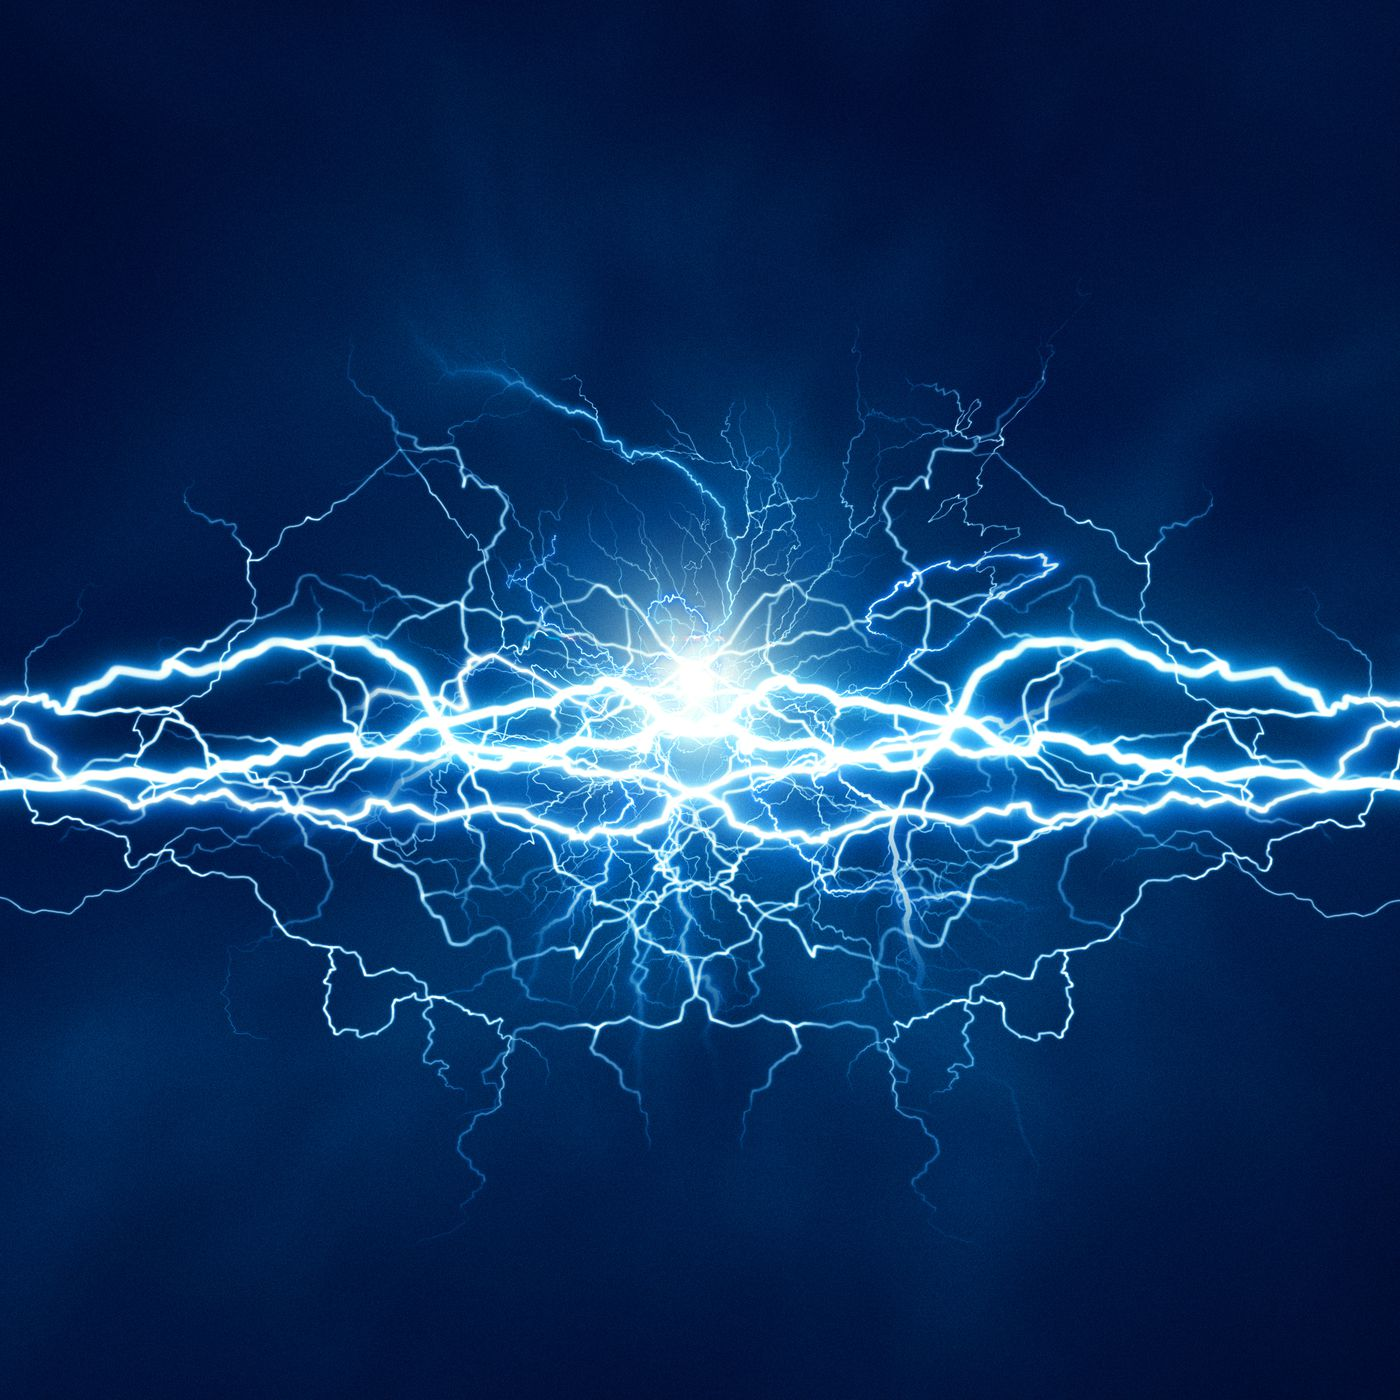 Electricity clipart blue electricity. The key to tackling